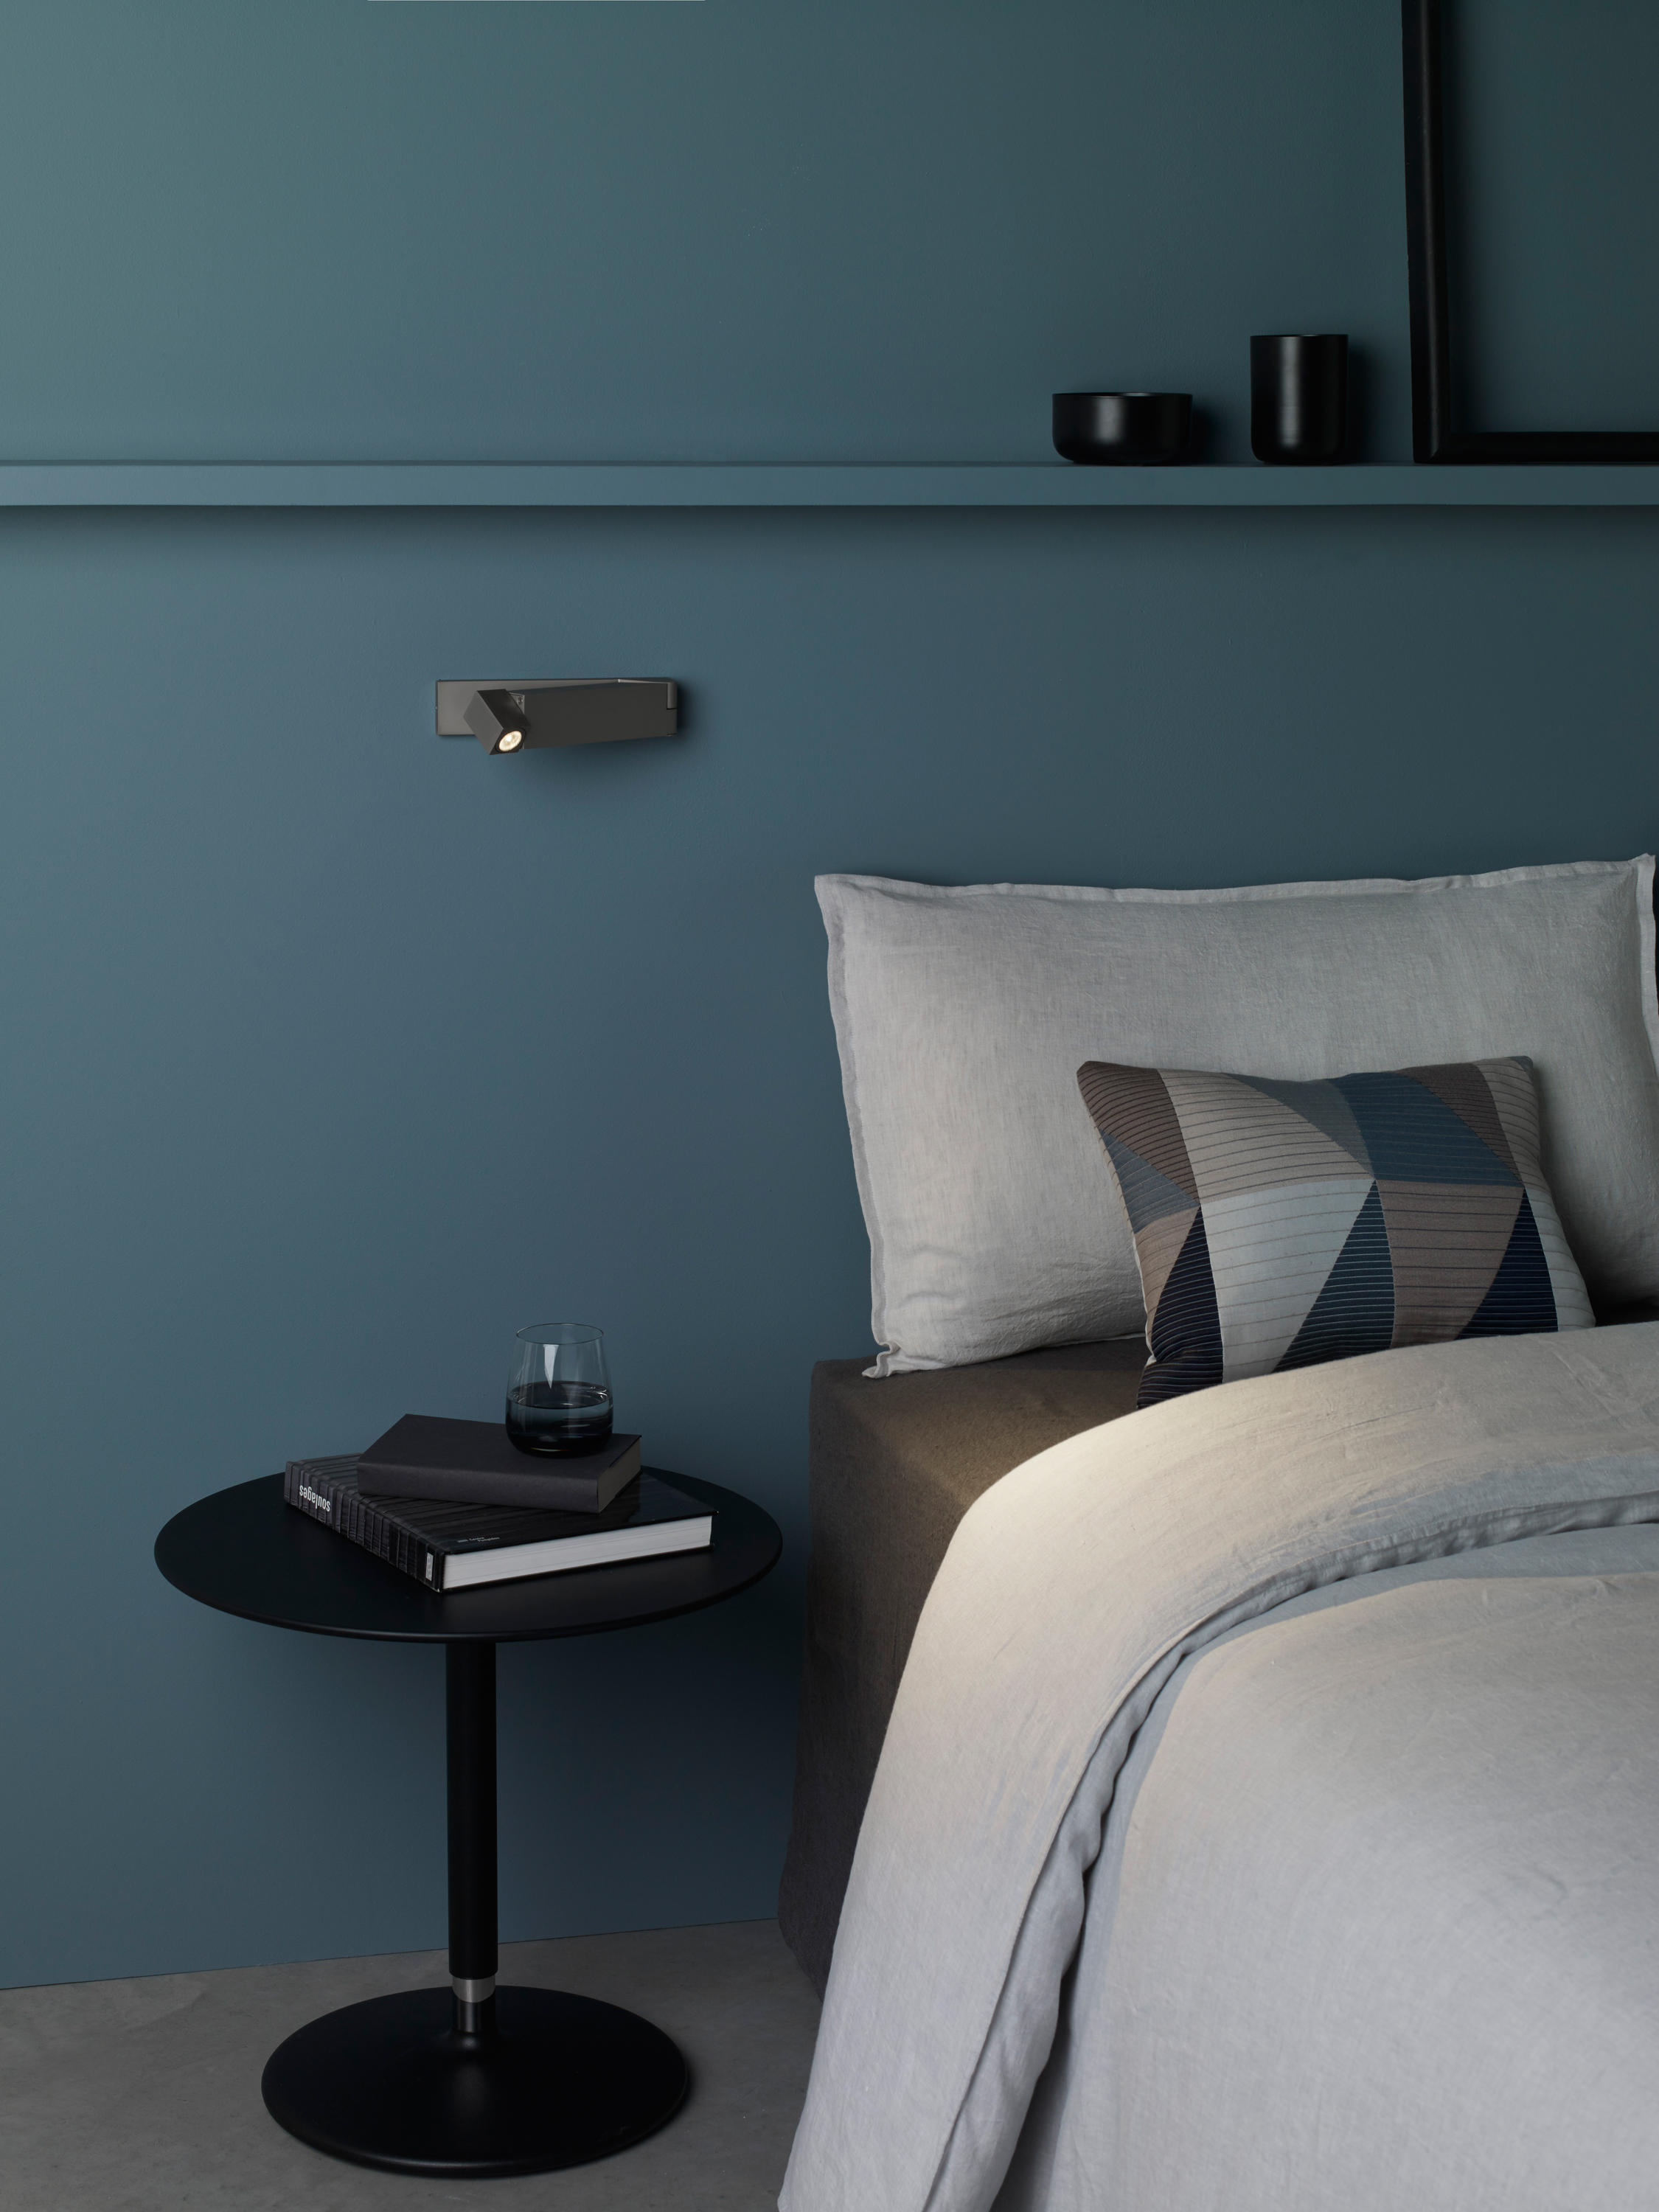 tosca led wall mounted spotlights from astro lighting. Black Bedroom Furniture Sets. Home Design Ideas